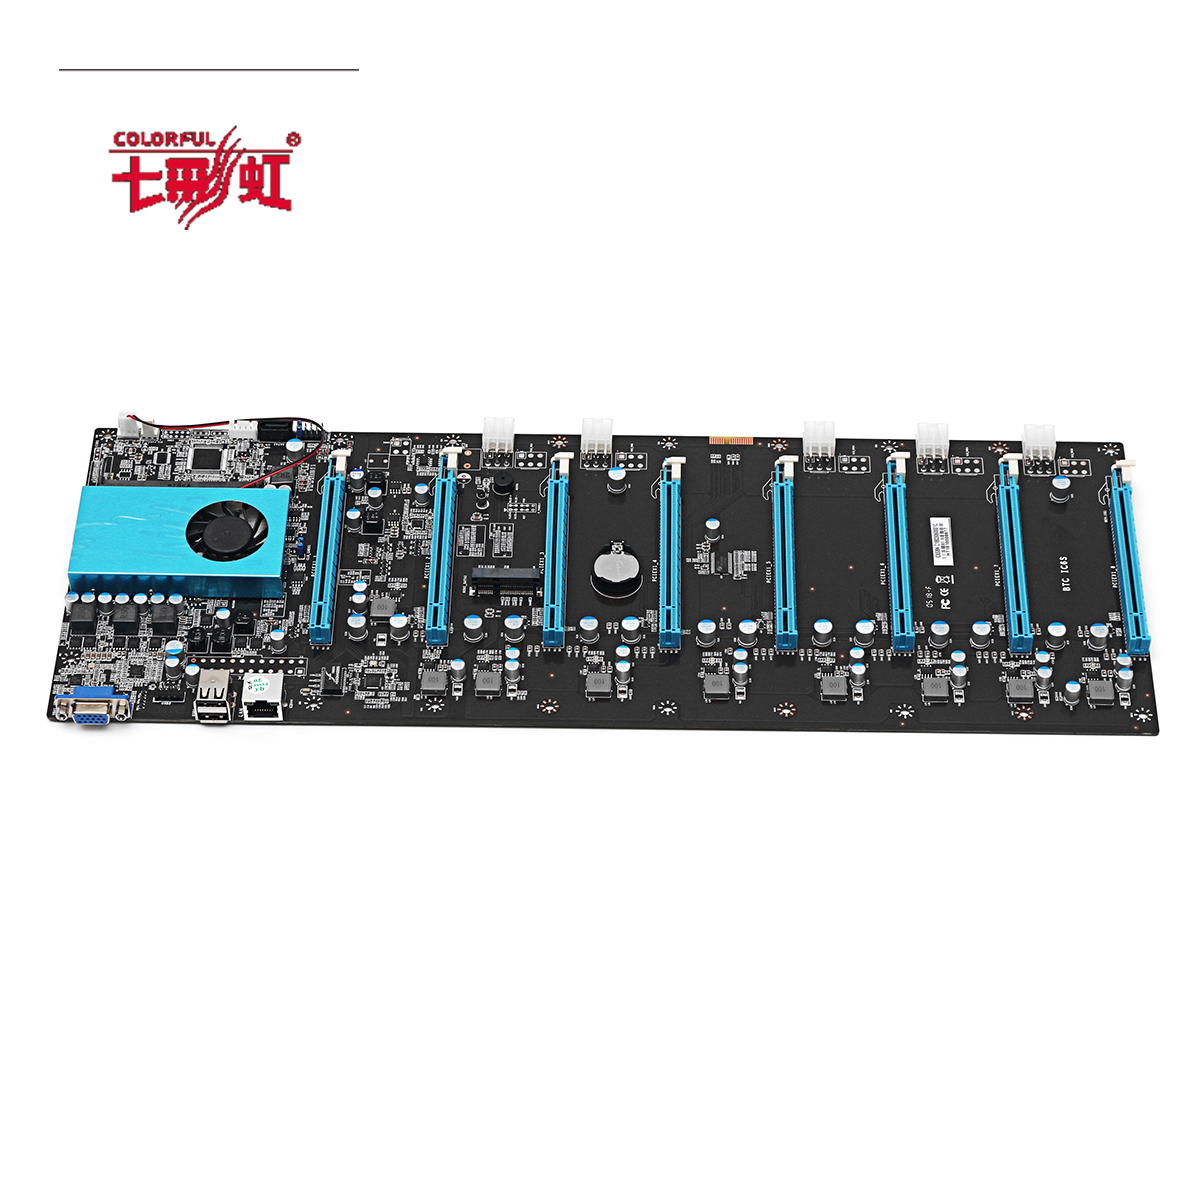 Colorful BTC IC6S Mining Motherboard Main Board for Computer CPU Intel With 8 PCI E Slots